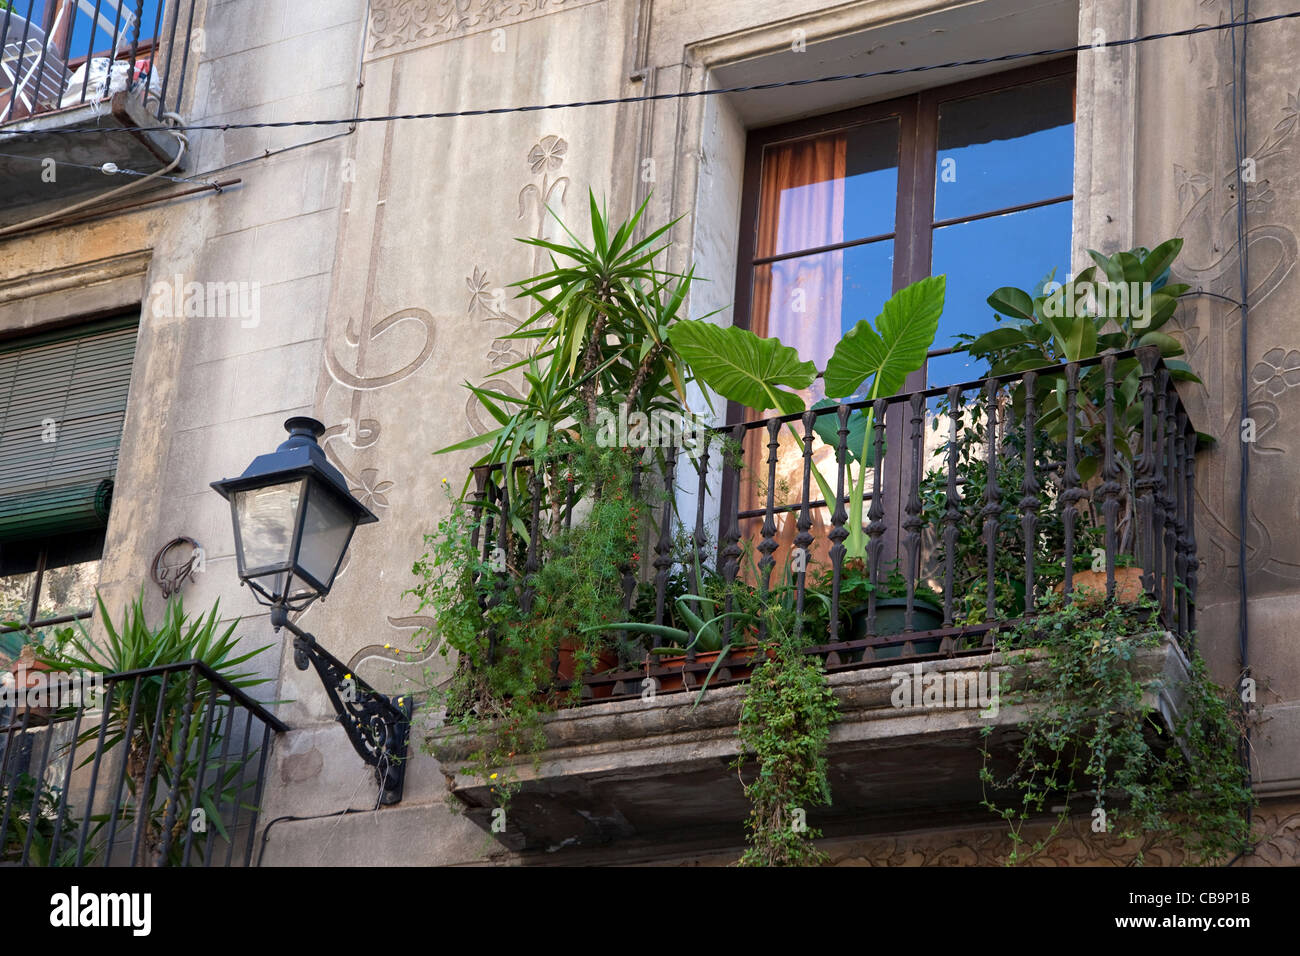 Balcony garden with palms in the Barri Gòtic / Gothic quarter in Barcelona, Spain - Stock Image